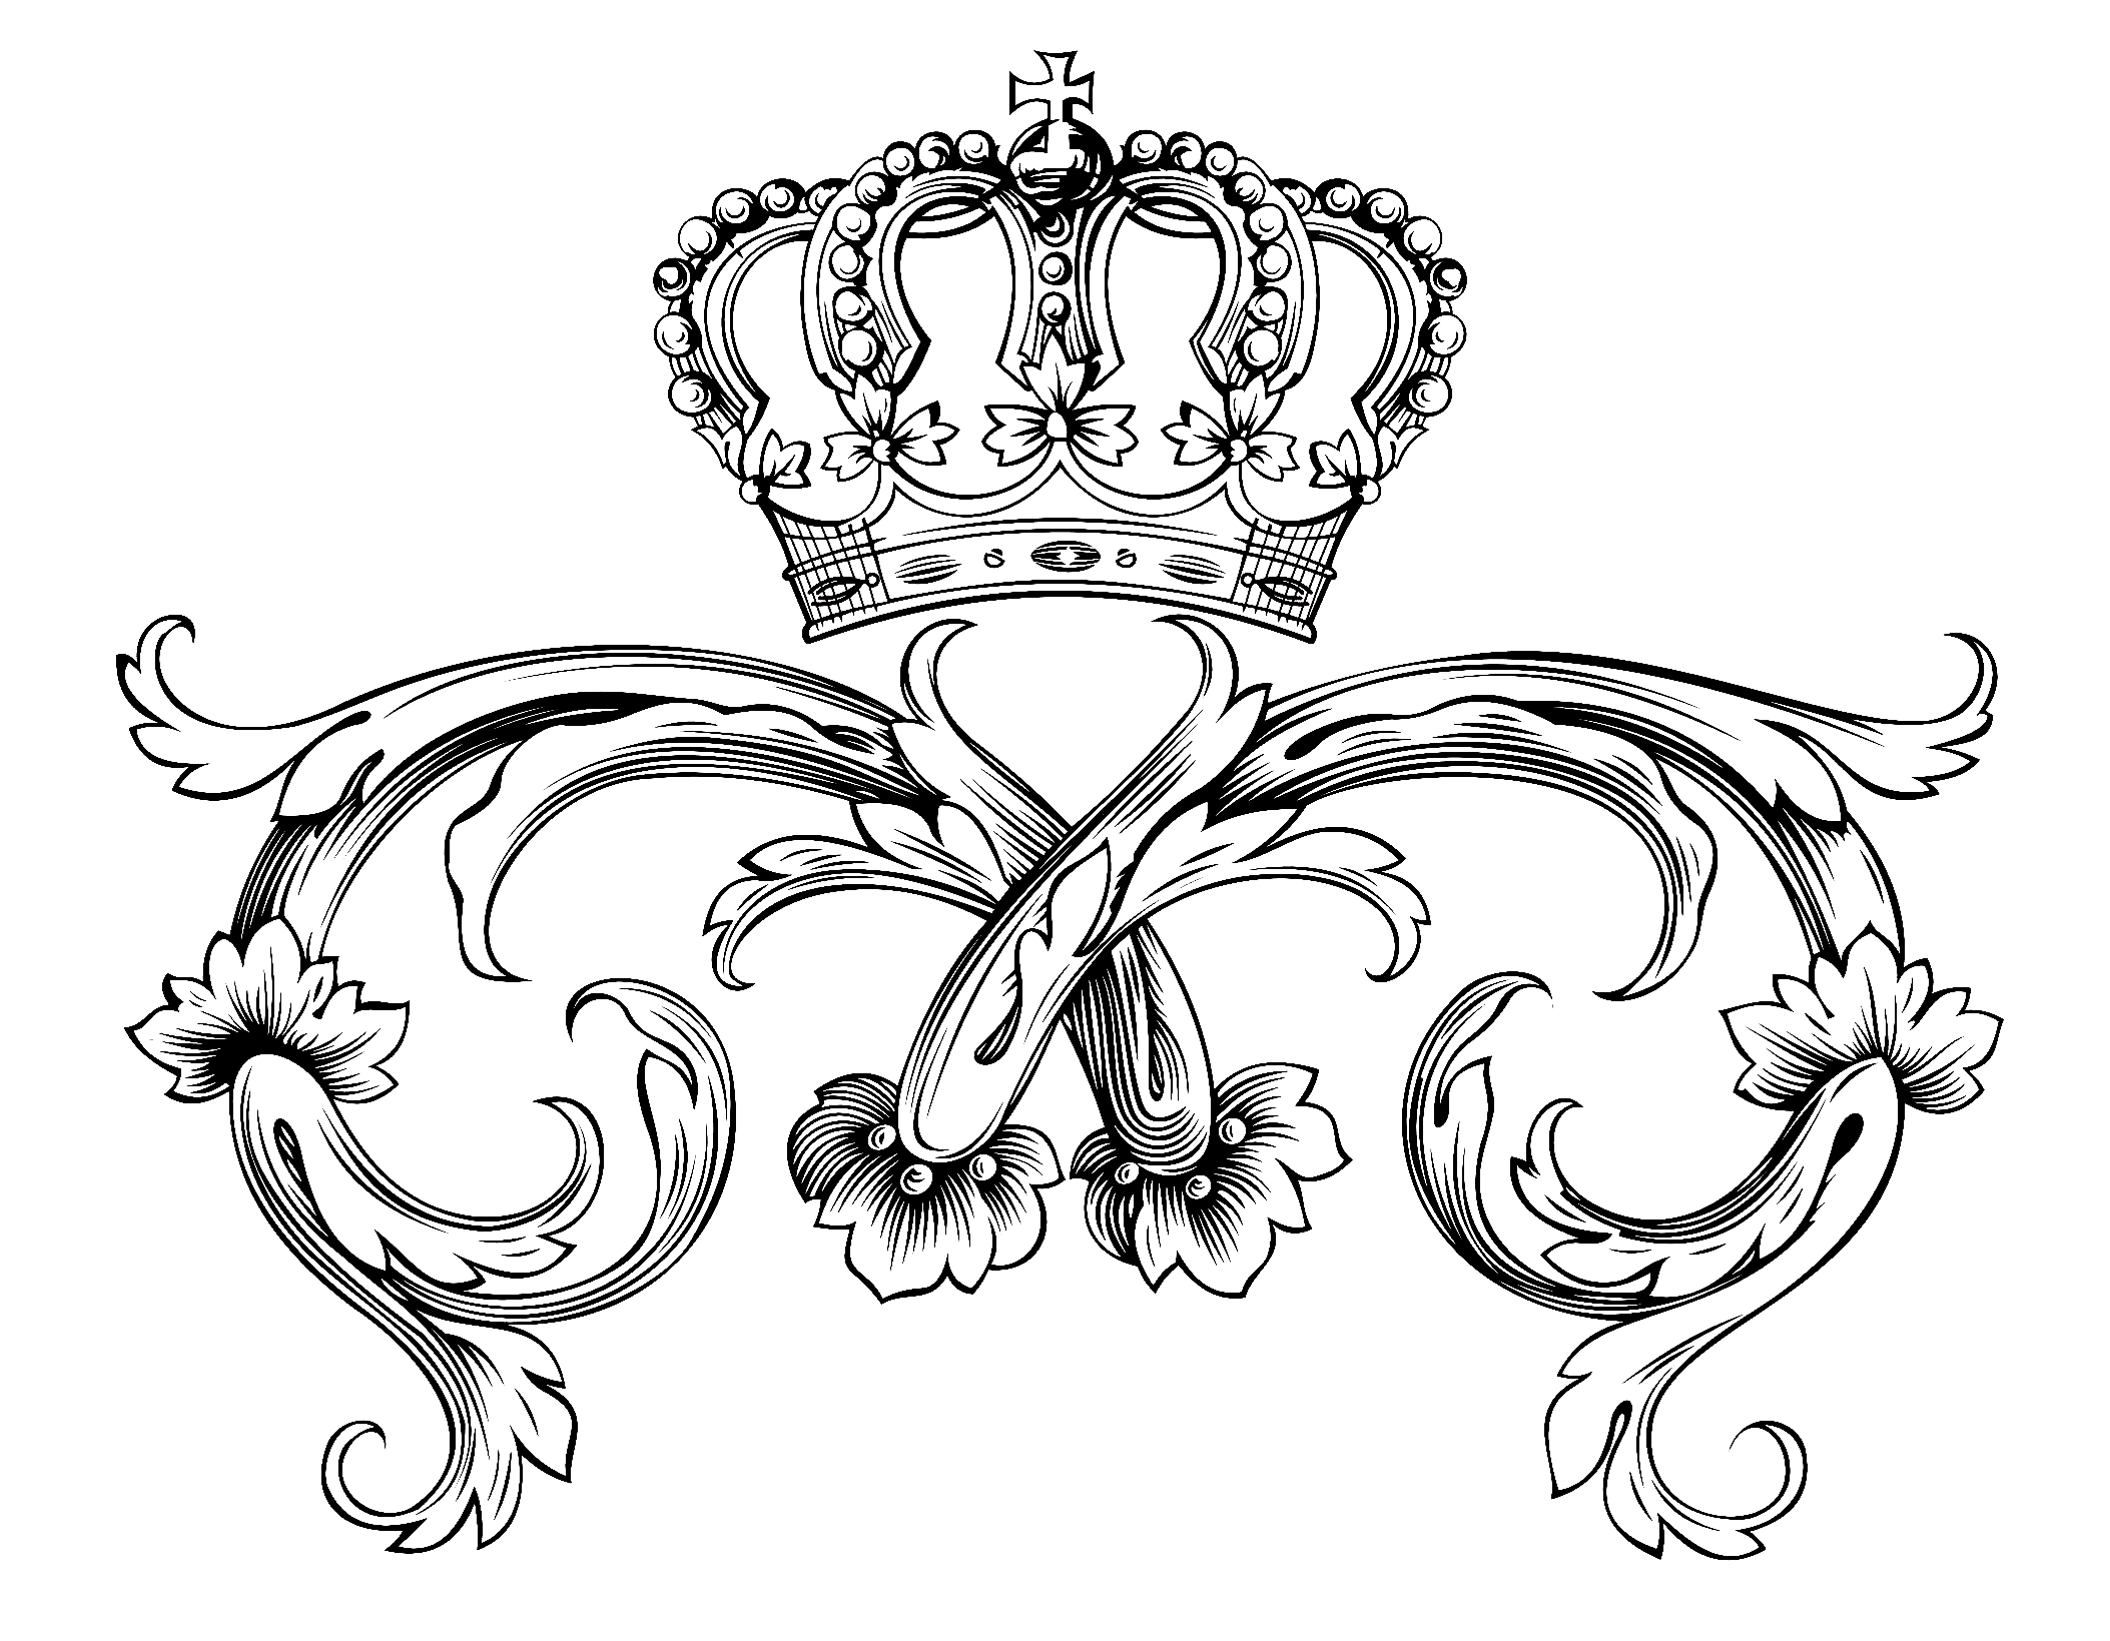 Free Coloring Page Adult Symbol Royal Crown By Dl1on